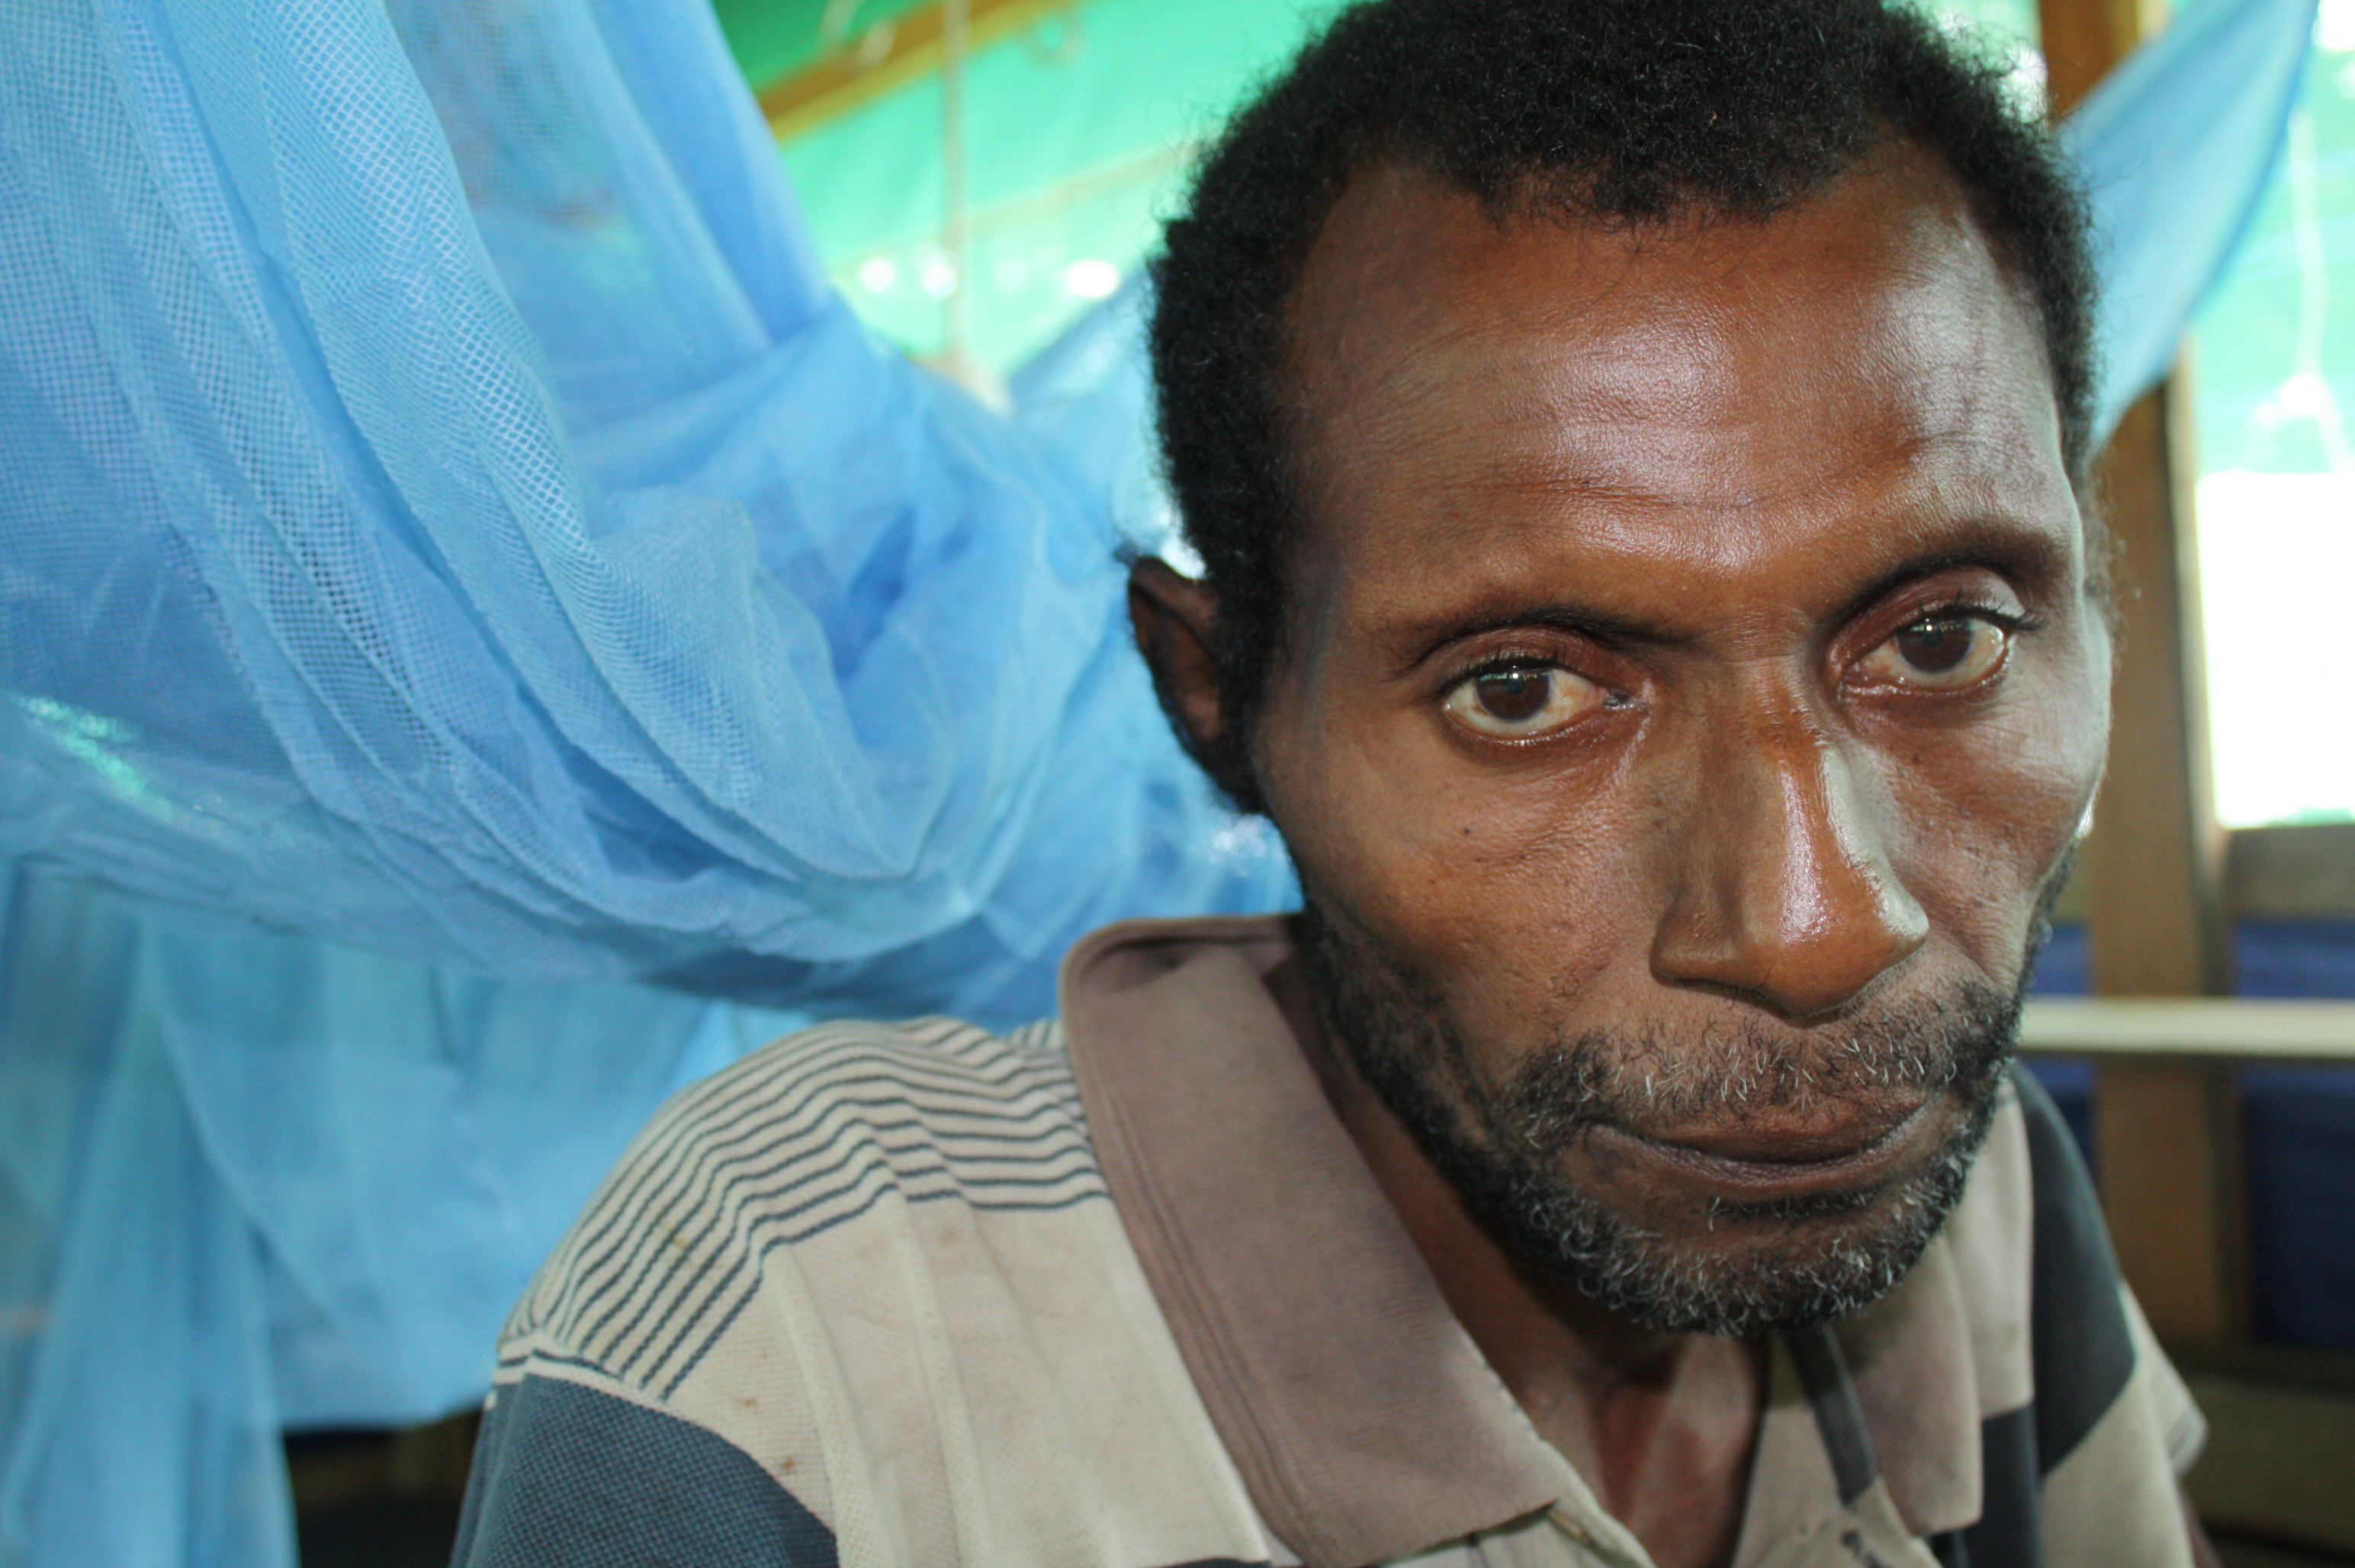 Willie Kagoe, 47, of Banara Village, 160 km outside Madang, northern PNG is the latest victim of cholera